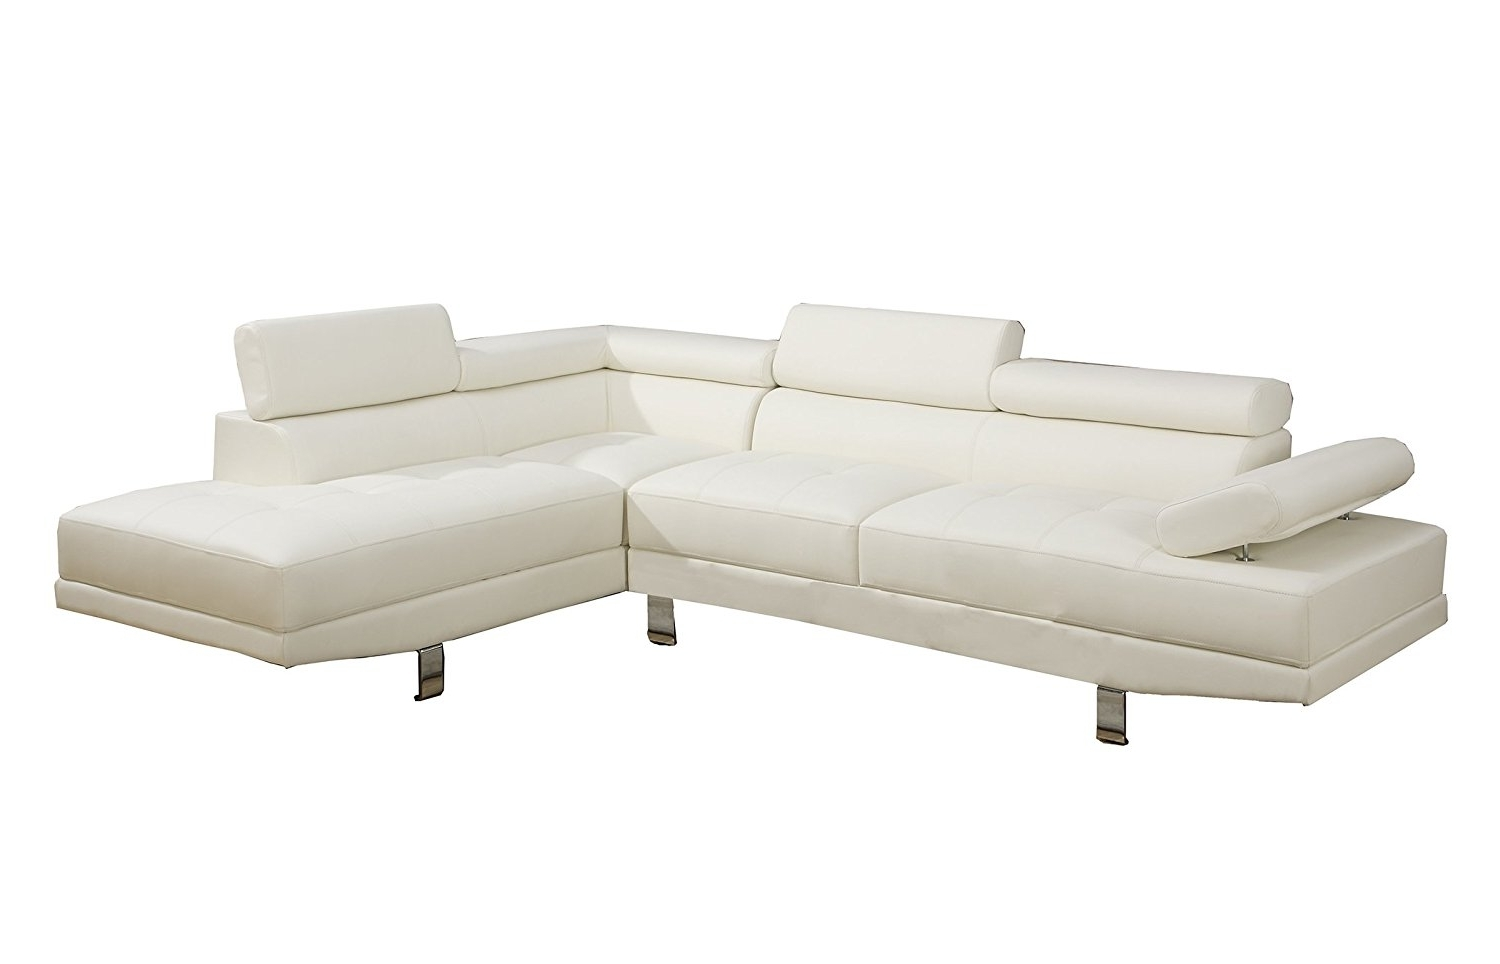 Amazon: Poundex 2 Pieces Faux Leather Sectional Right Chaise Throughout Most Recent Leather Chaise Sofas (View 2 of 15)